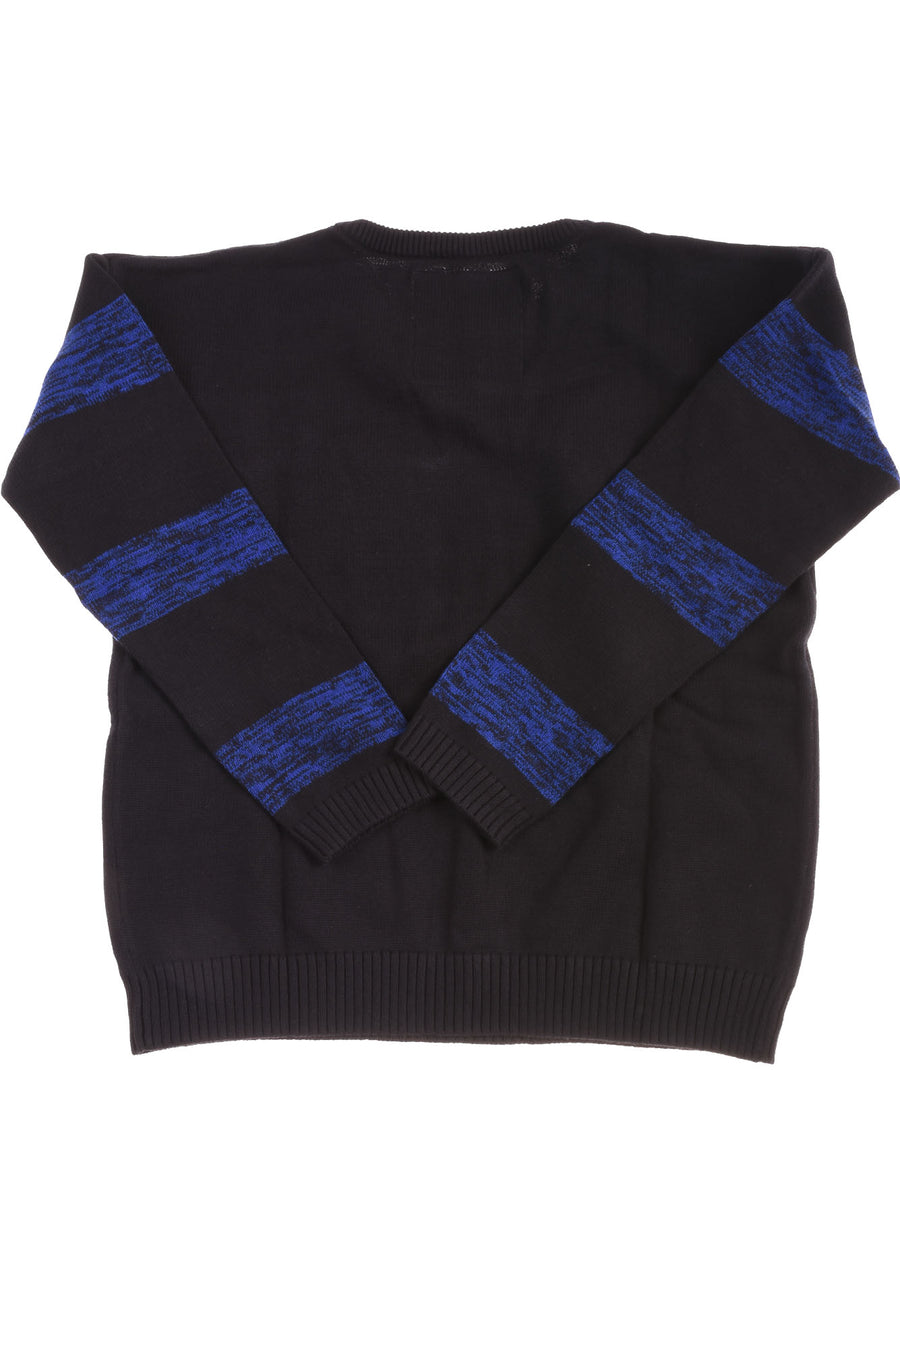 USED We Love Fine Men's Sweater Small Black & Blue